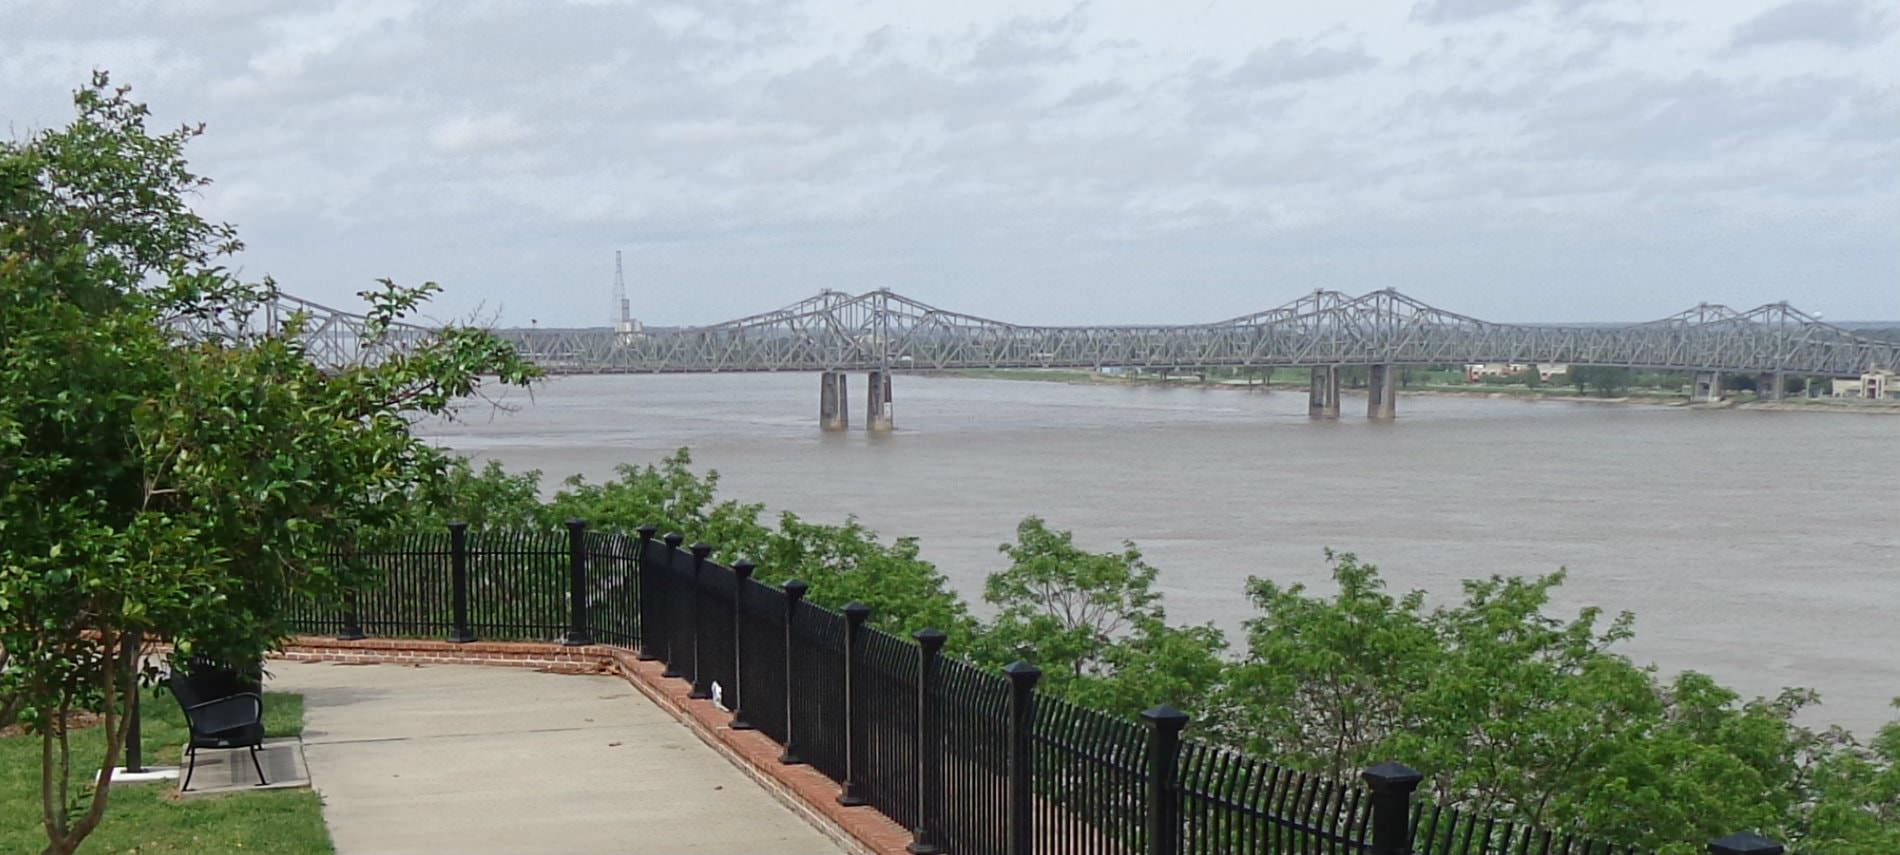 View of a sidwalk in the park overlooking water on a cloudy day and a long bridge in the distance